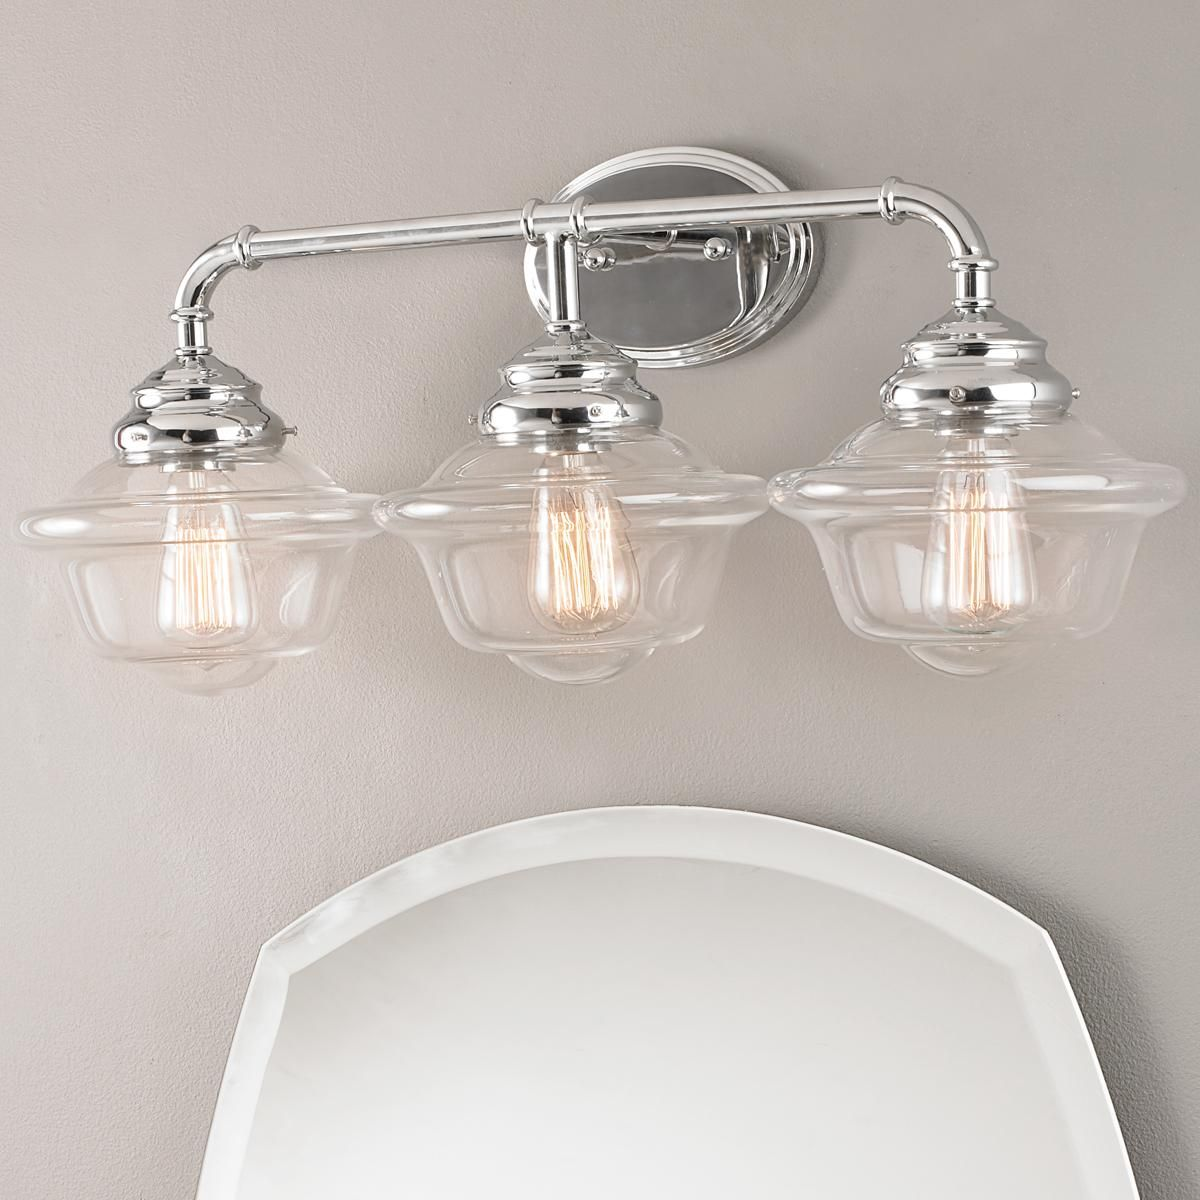 Timeless Schoolhouse Bath Light 3 Light Bath Light Bathroom Light Fixtures Chrome Vintage Bathroom Lighting